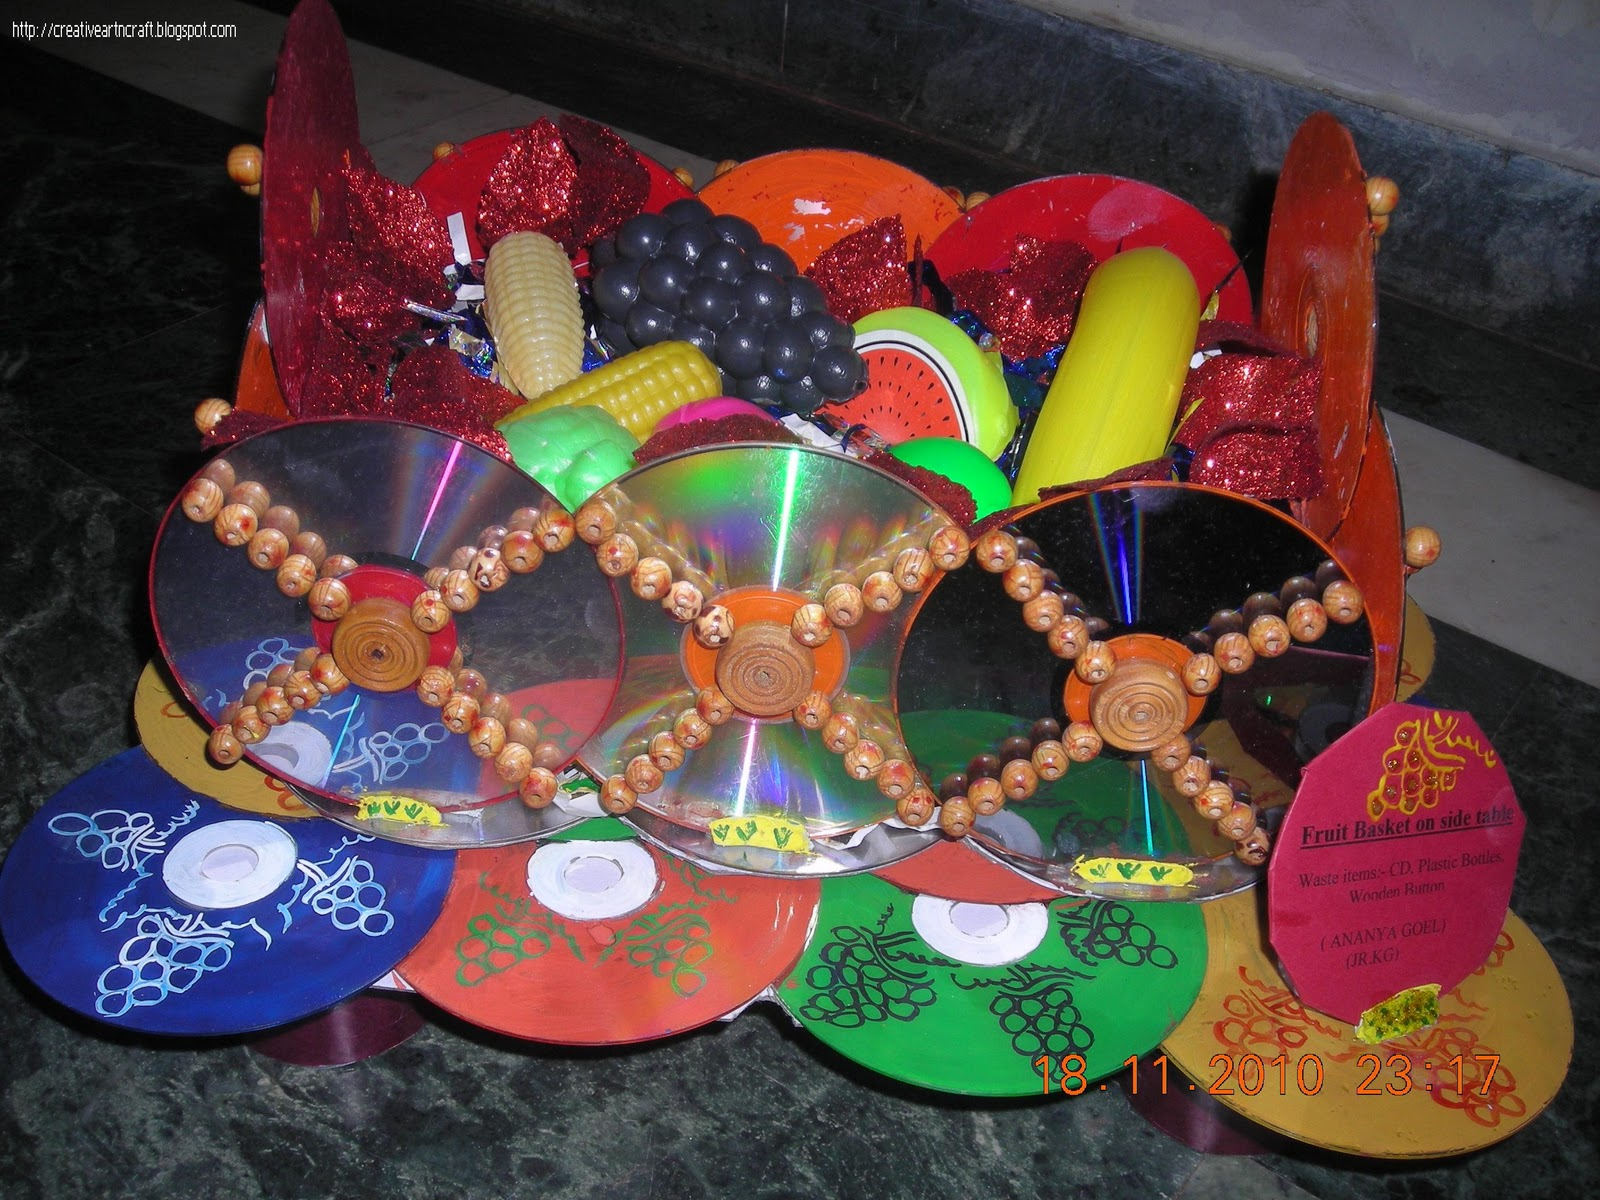 Anu 39 s art and crafts best out of waste fruit basket with for Best from waste material